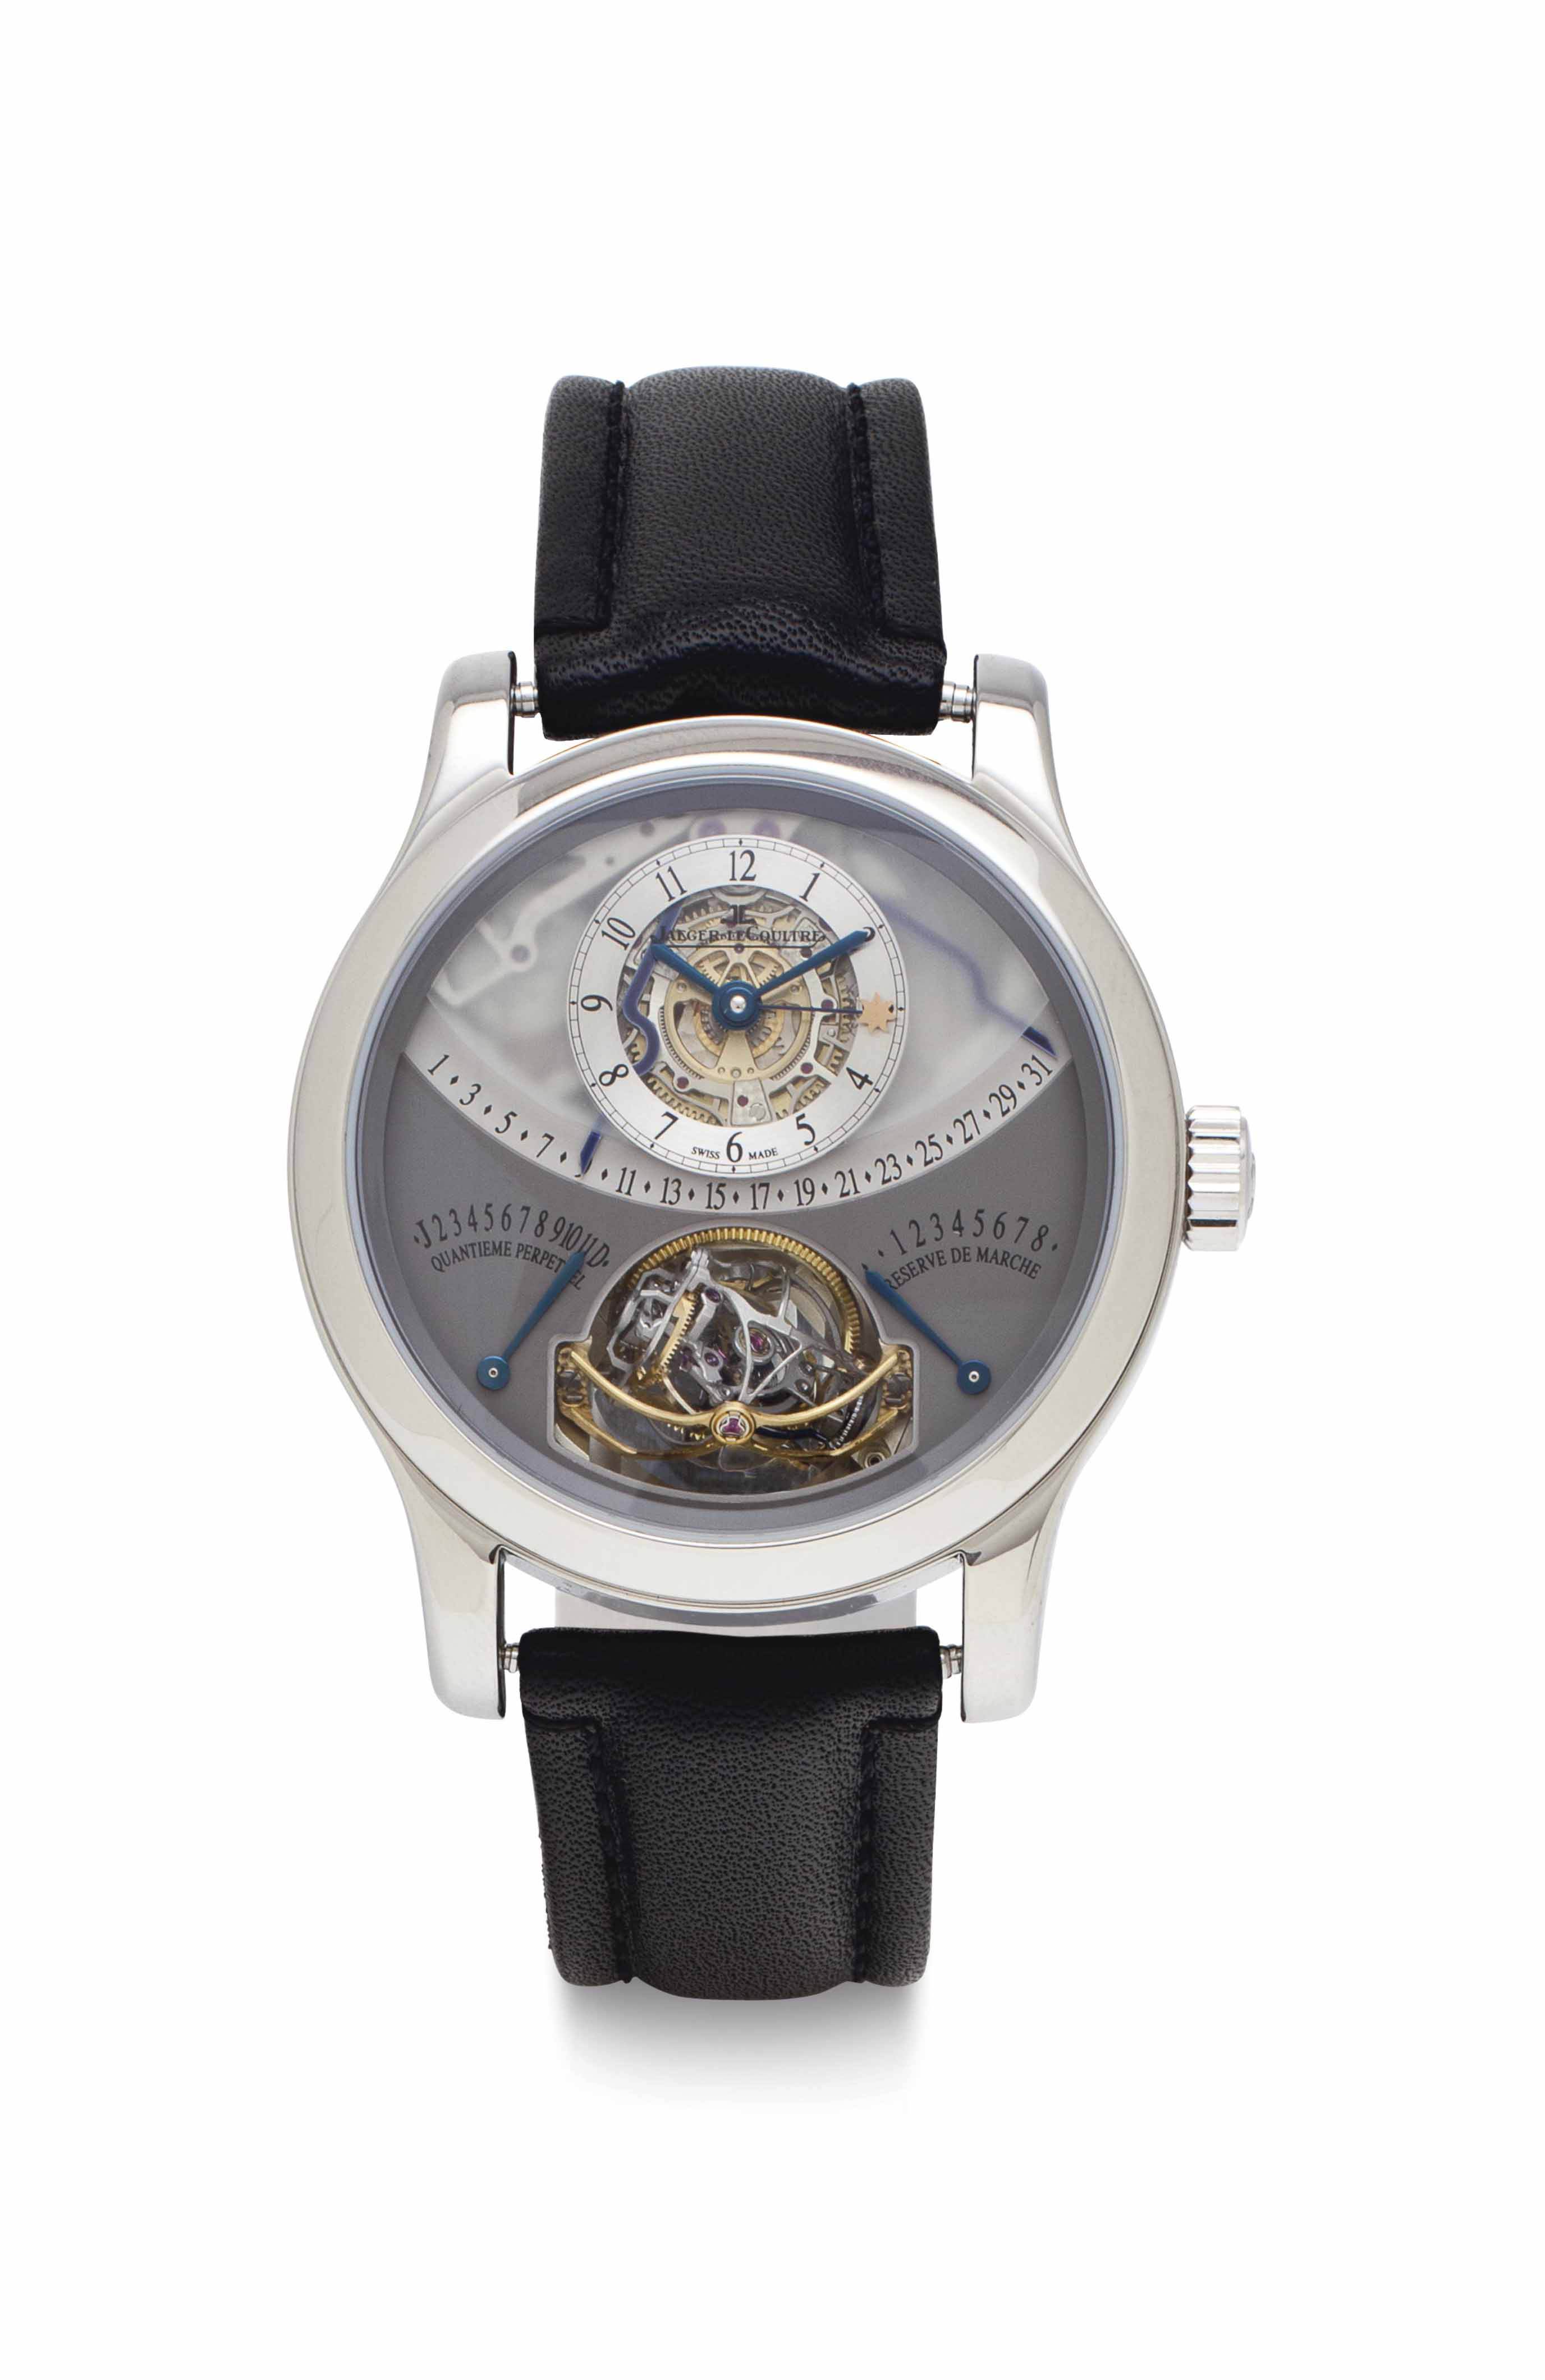 Jaeger-LeCoultre. A Fine and Rare Limited Edition Platinum Perpetual Calendar Multi-Axis Spherical Tourbillon Wristwatch with Retrograde Day, Month and Leap Years, 8 Day Power Reserve Indication and Equation of Time